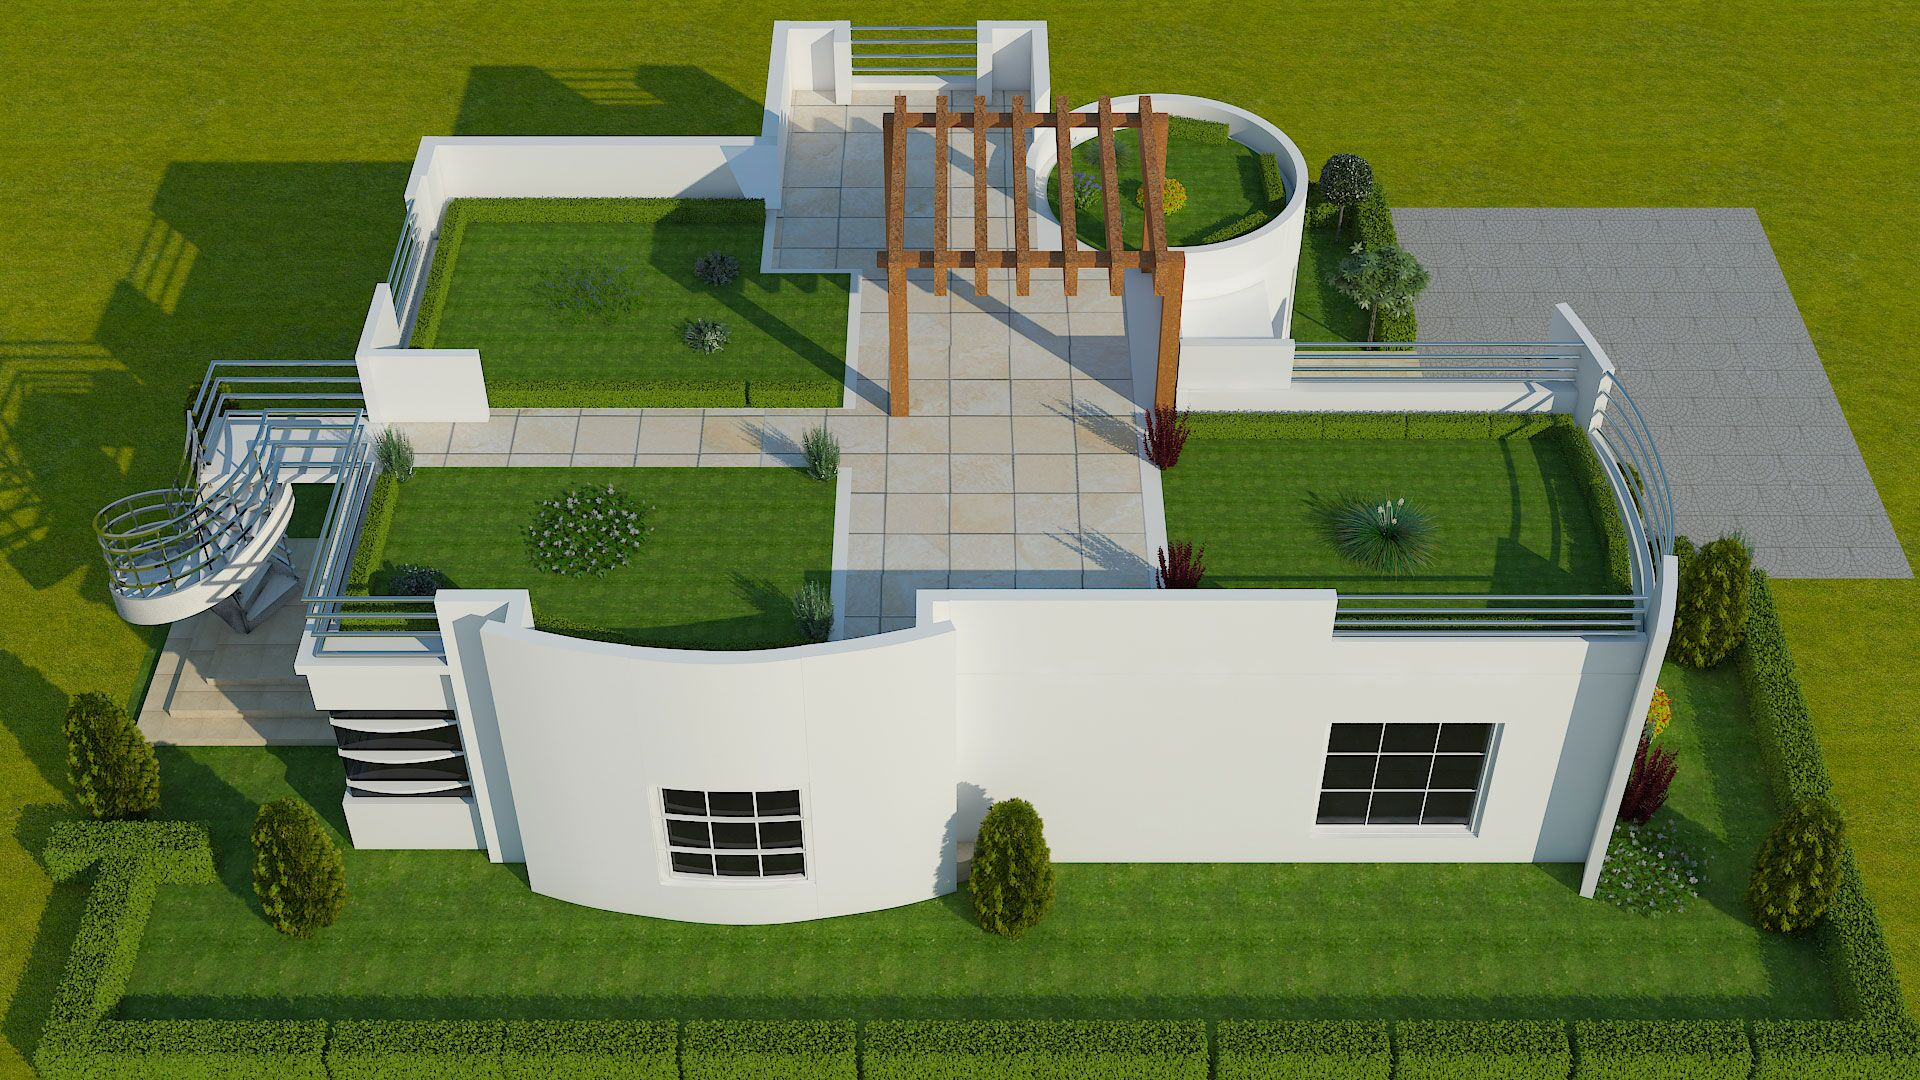 Sunconomy to build its 1st 3D-printed house in Central Texas